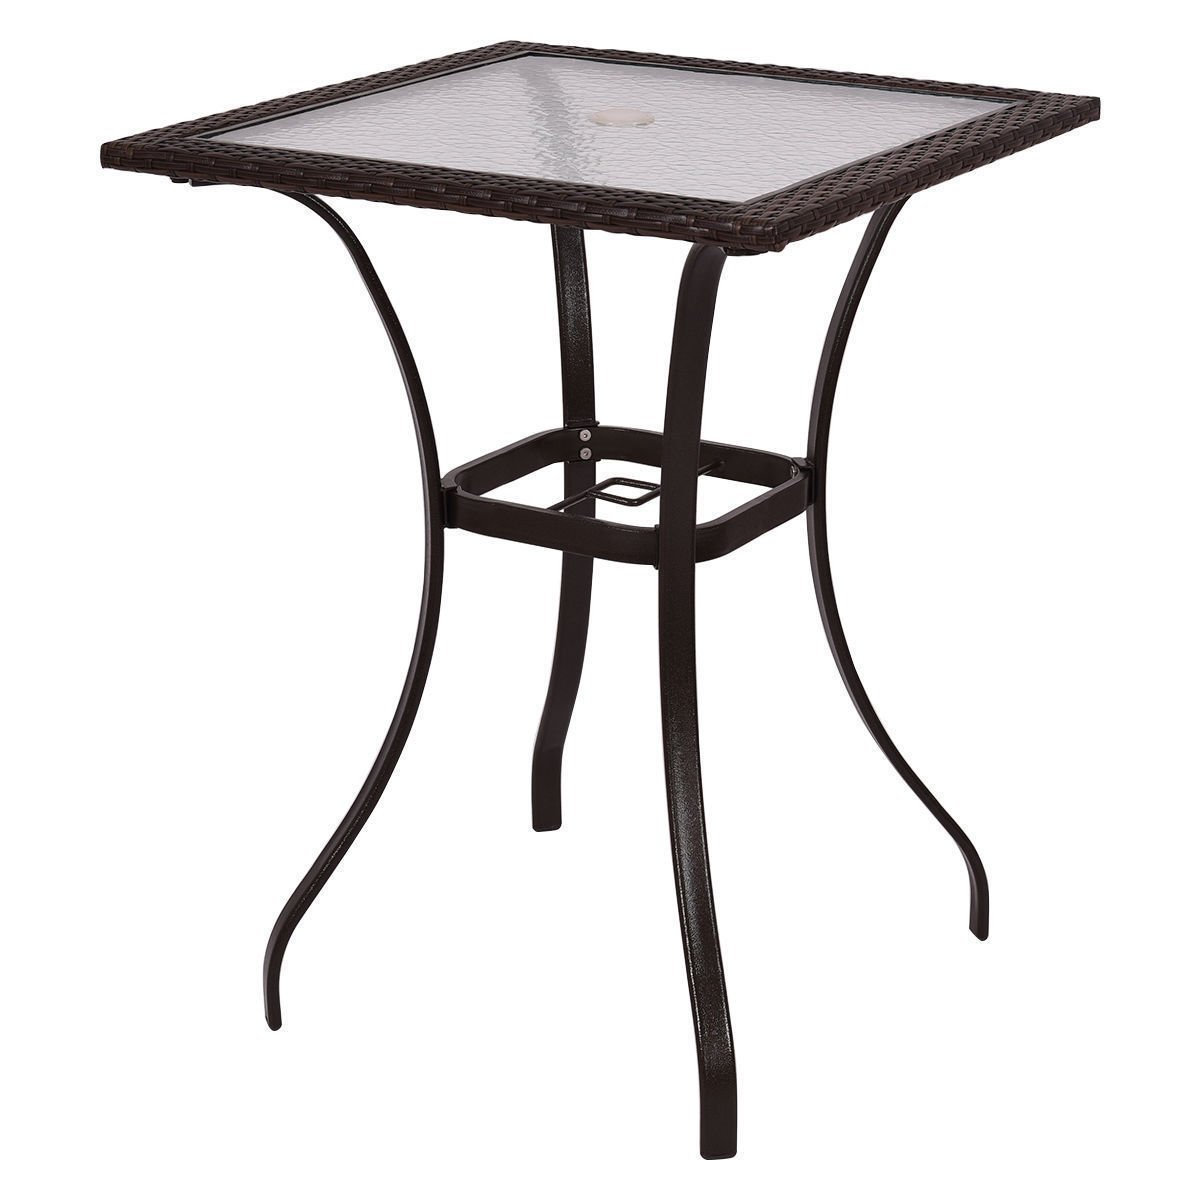 GoodGoods LLC Bar Square Table Glass Modern and Useful Outdoor Patio Rattan Wicker Top Yard Garden Furniture New by GoodGoods LLC (Image #1)